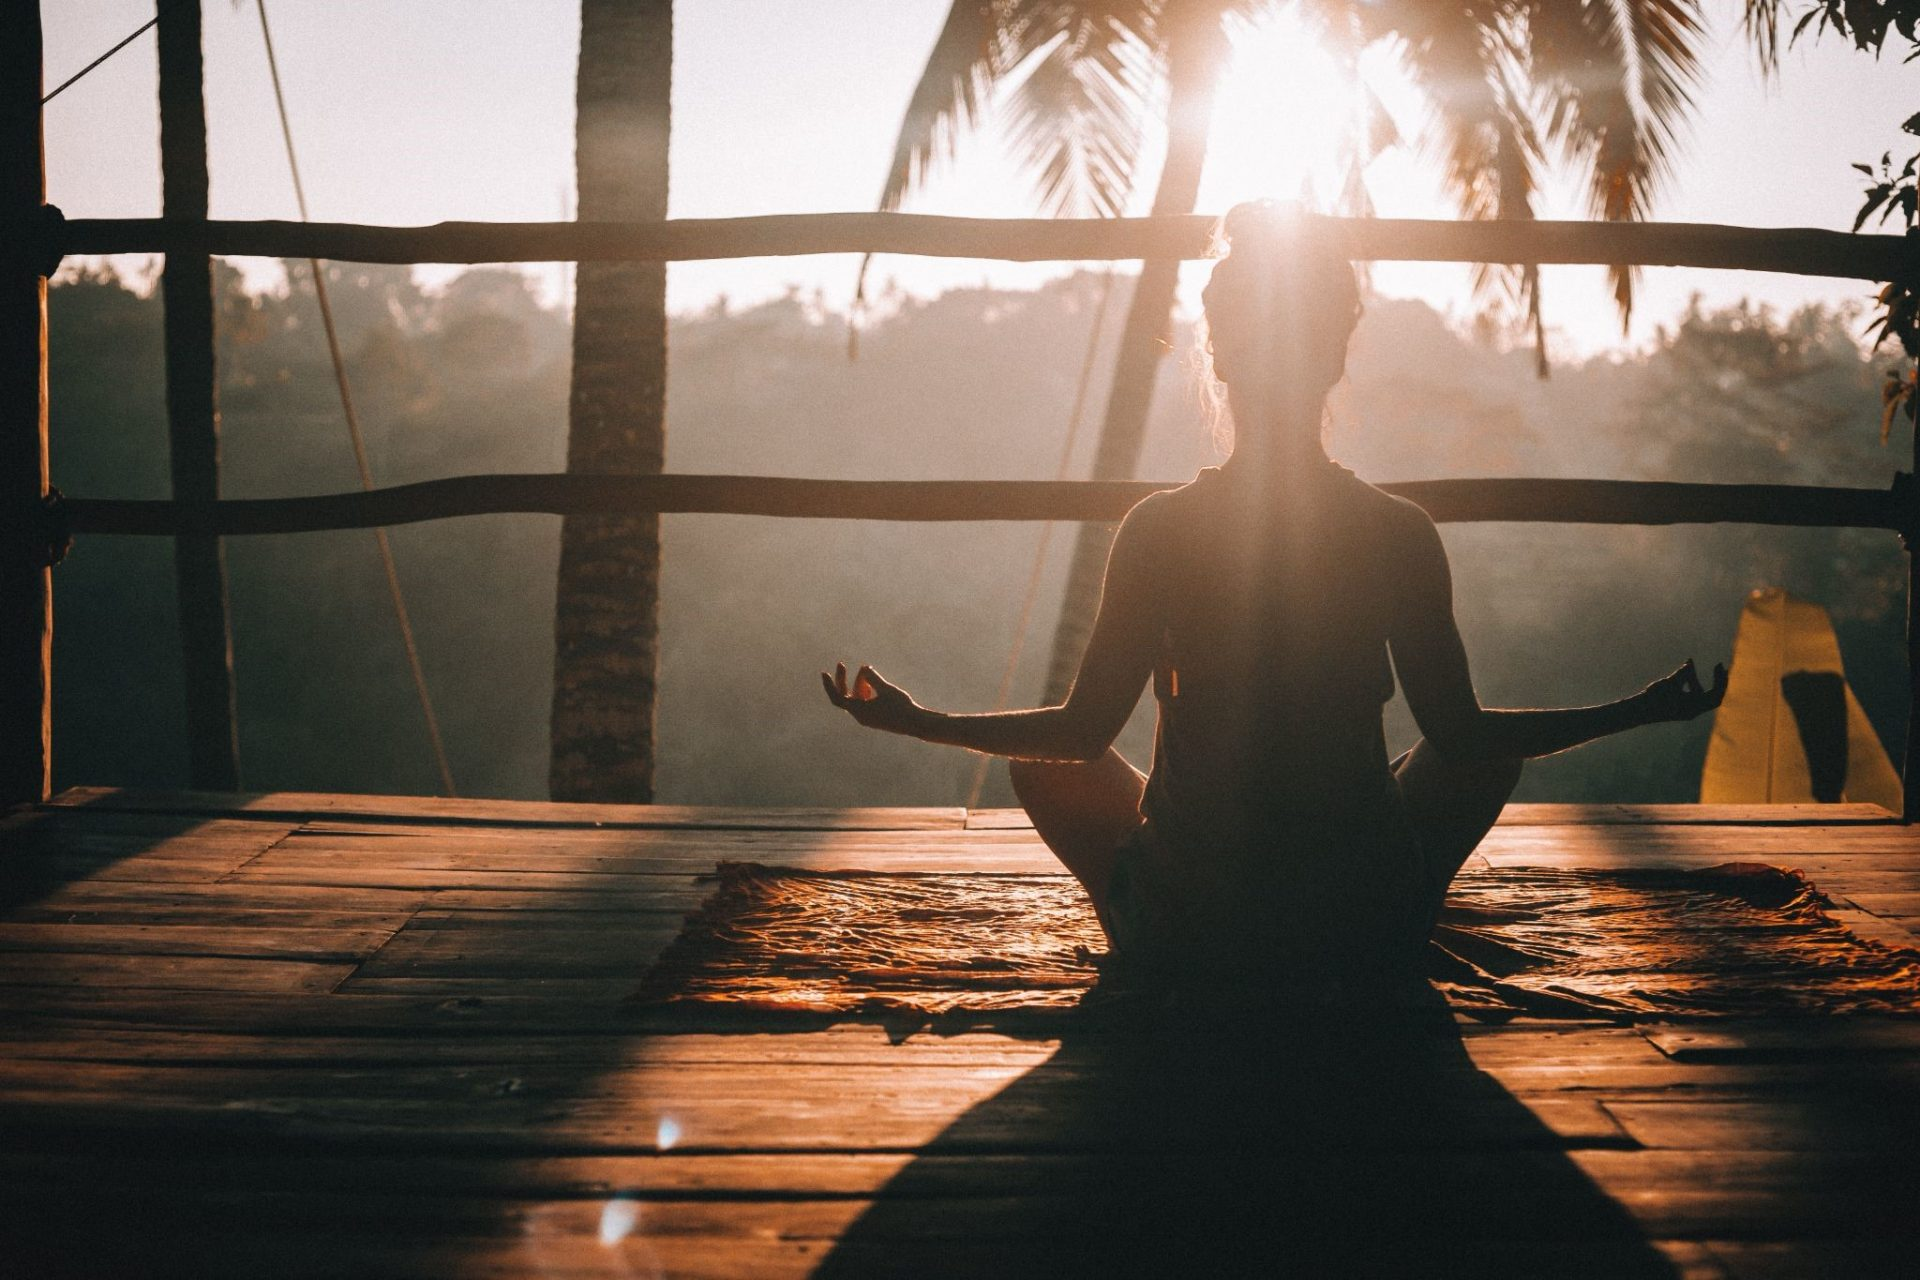 silhouette of girl meditating and doing a yoga pose in an island | luxury lifestyle and homes by brittany corporation